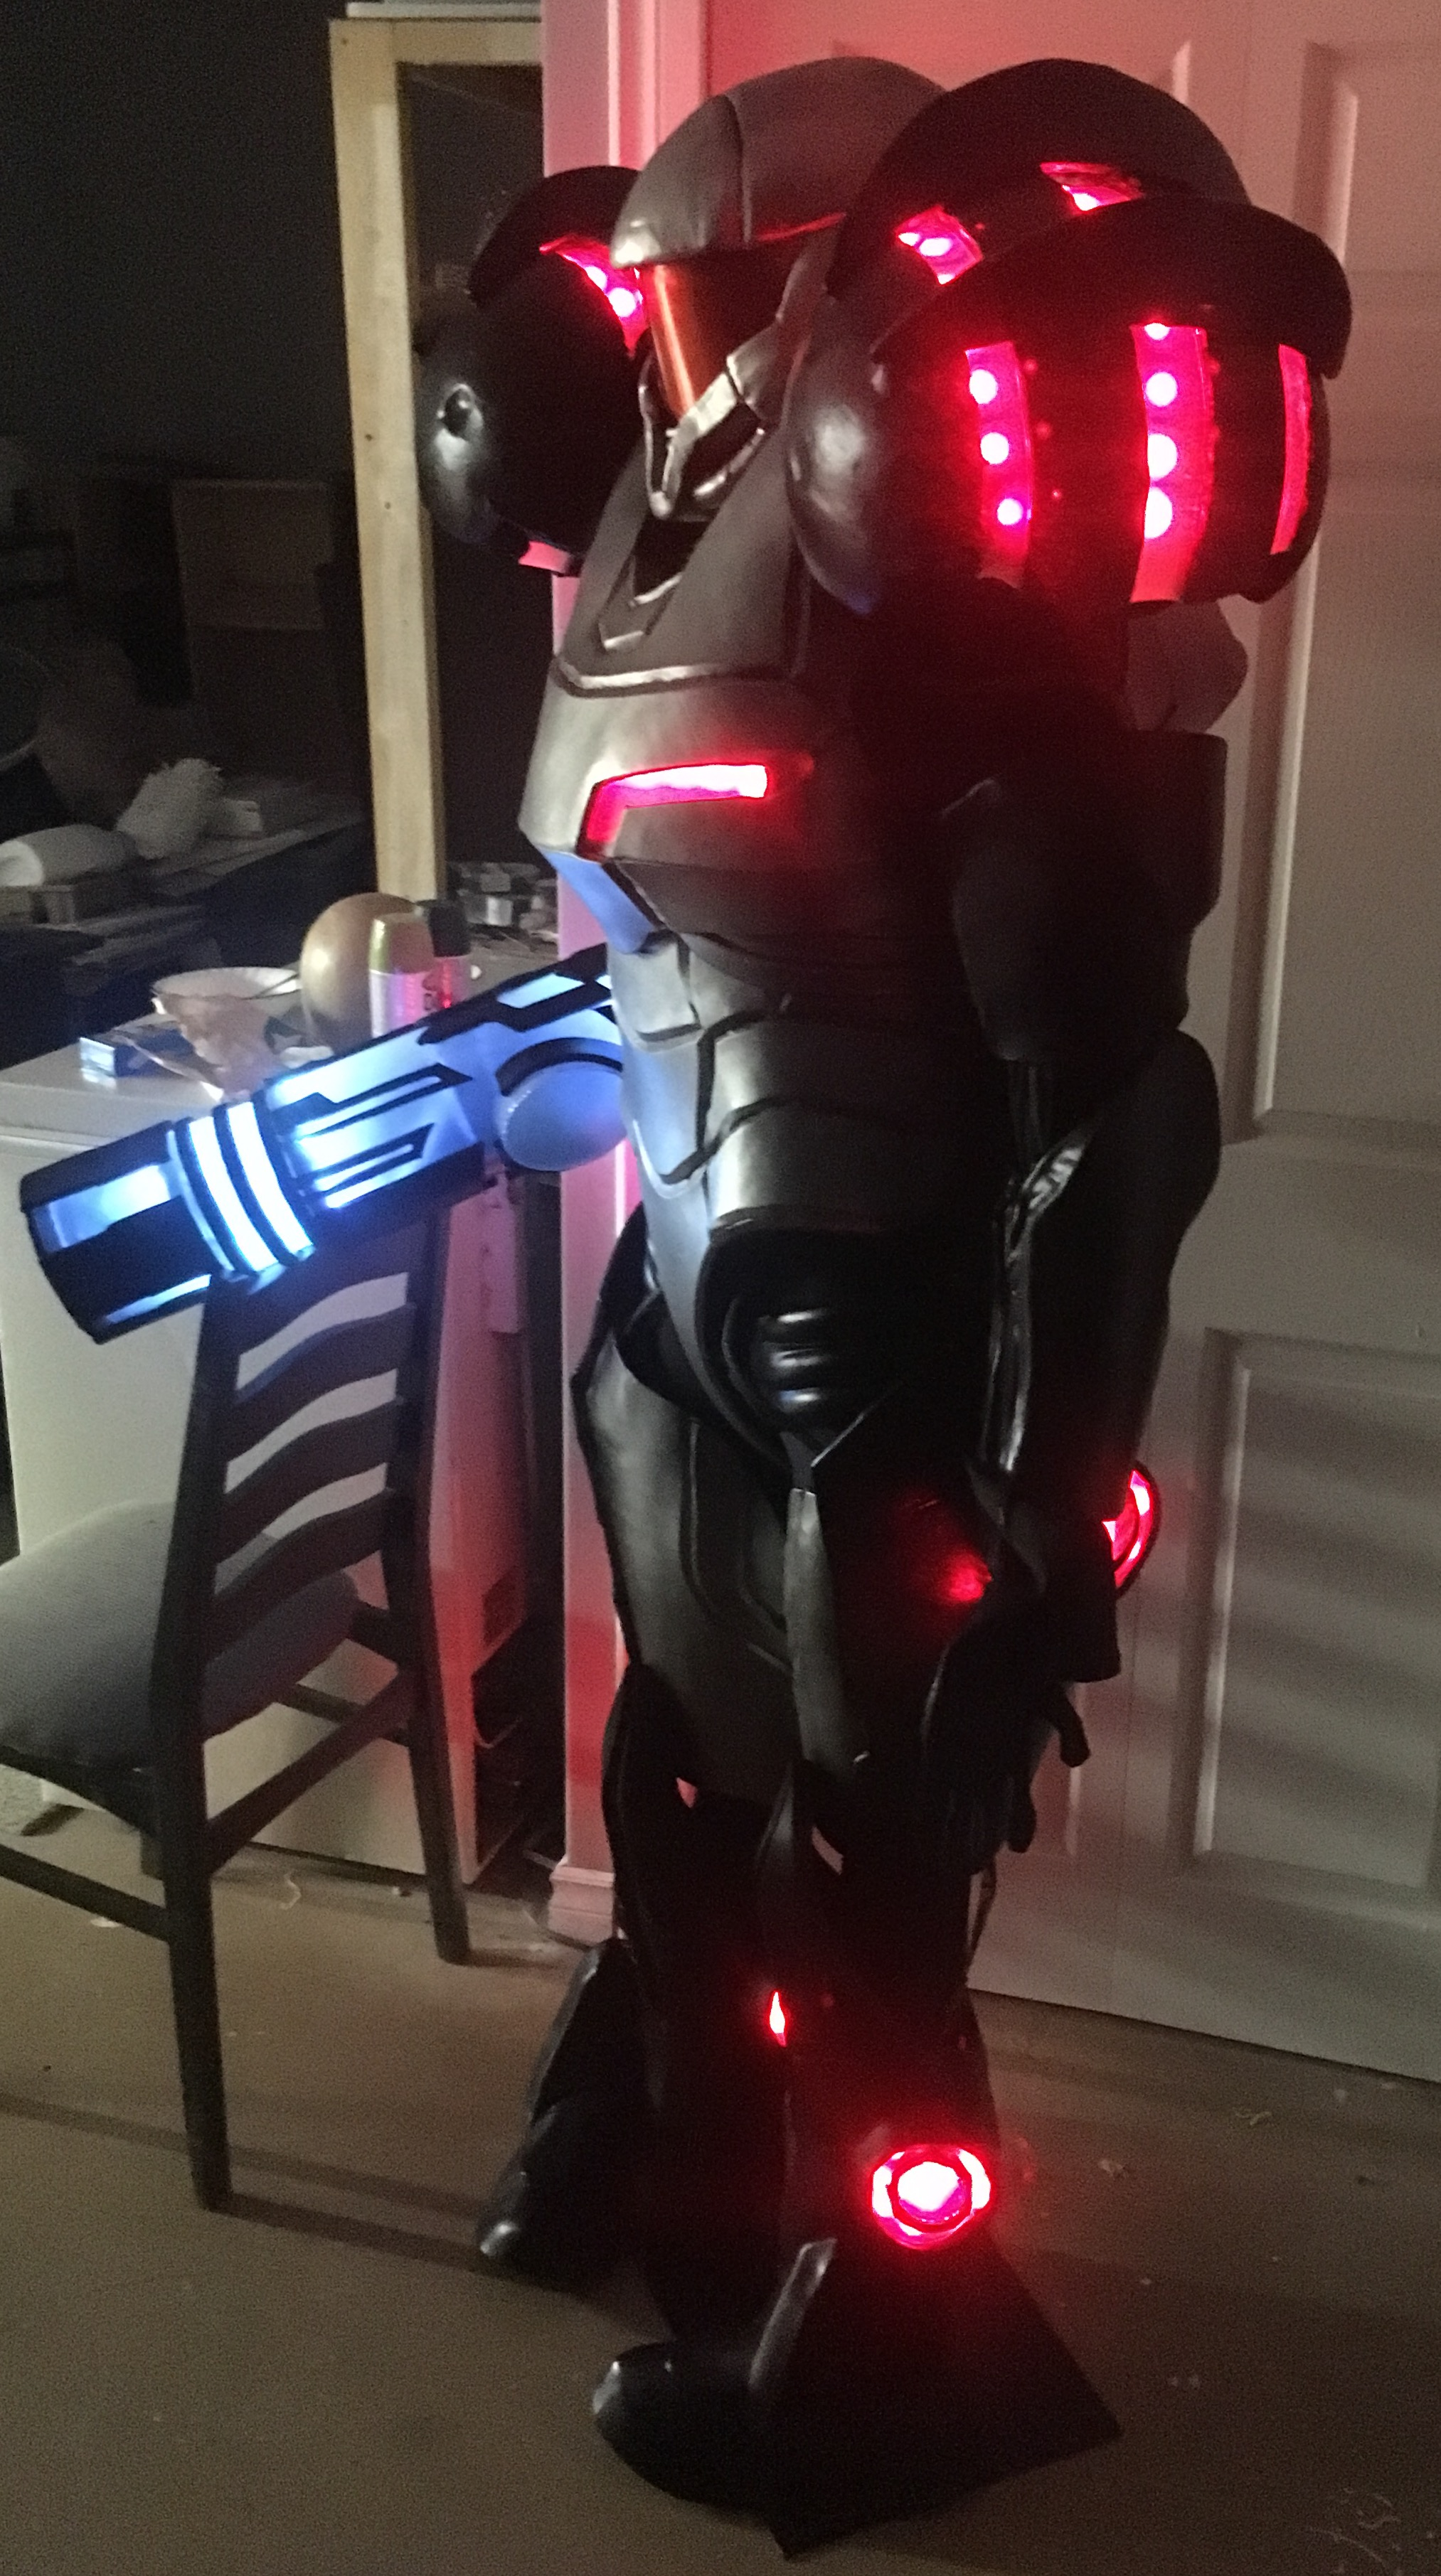 Samus Aran, LED gun and chestpiece